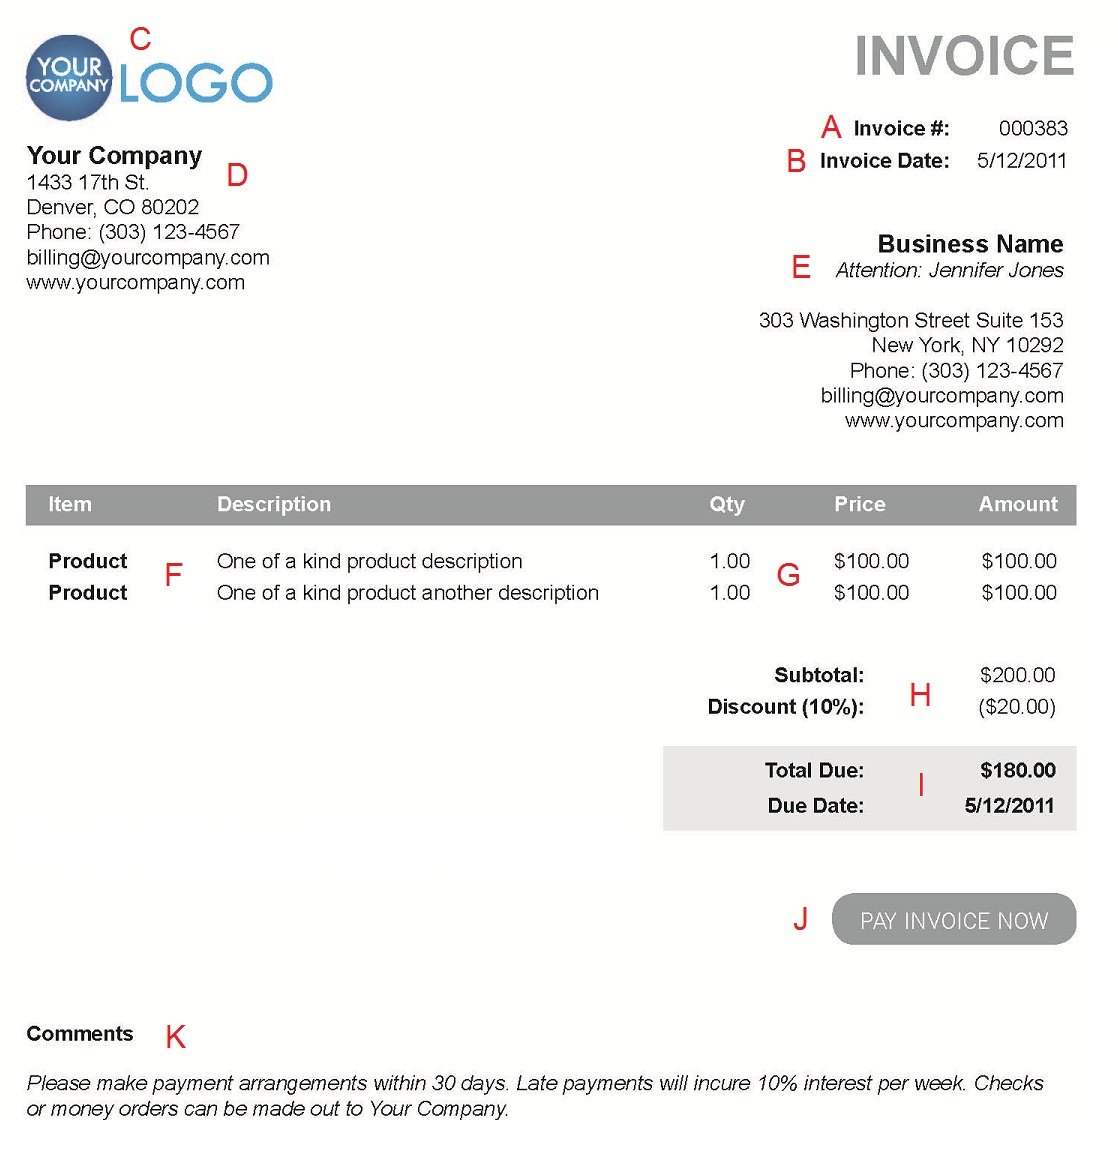 Adoringacklesus  Ravishing The  Different Sections Of An Electronic Payment Invoice With Interesting A  With Attractive Nch Invoice Also Sample Invoices Word In Addition Invoice Remittance And Virtually There Einvoice As Well As How Do I Make An Invoice Additionally Ariba Invoicing From Paysimplecom With Adoringacklesus  Interesting The  Different Sections Of An Electronic Payment Invoice With Attractive A  And Ravishing Nch Invoice Also Sample Invoices Word In Addition Invoice Remittance From Paysimplecom